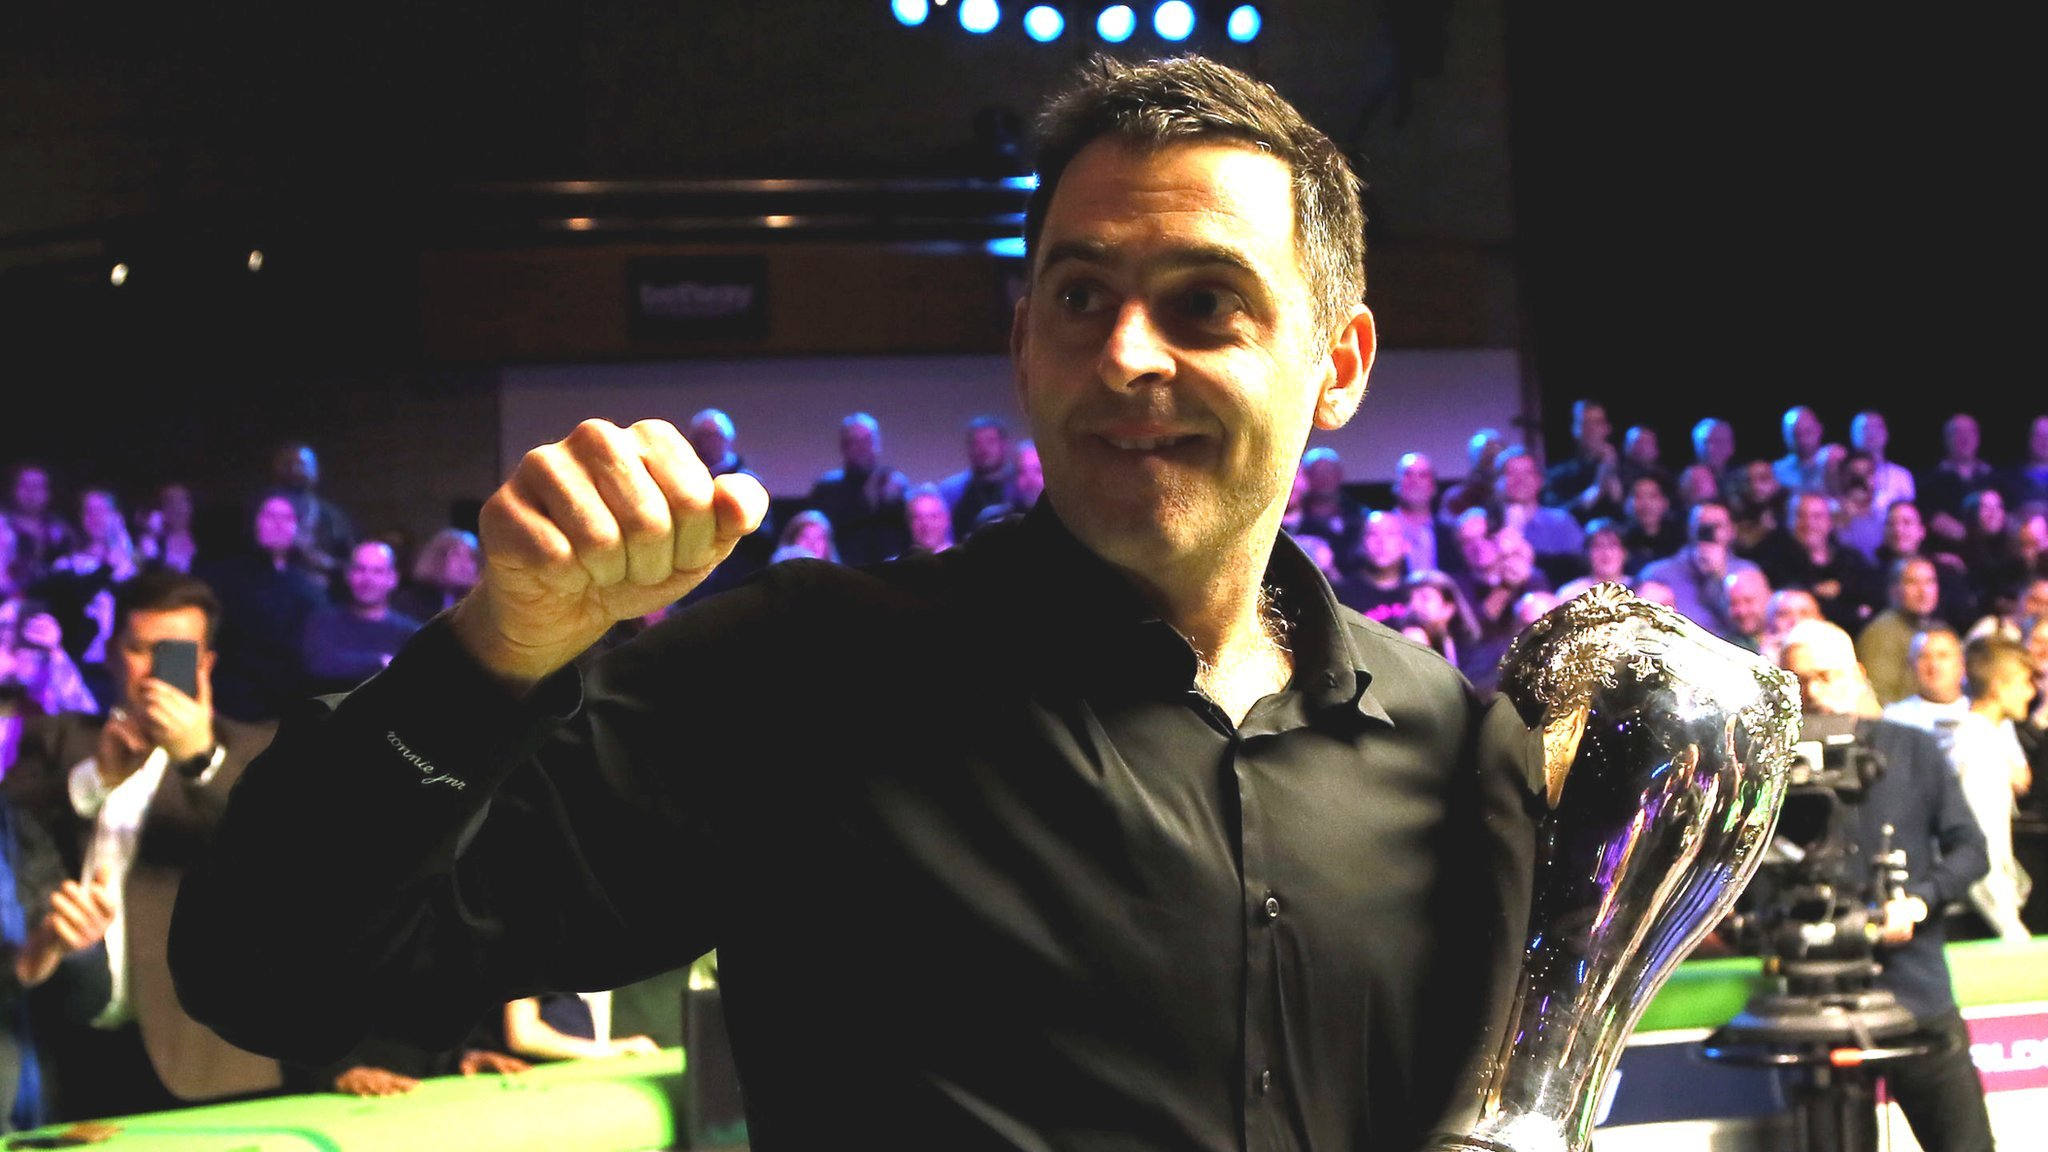 I'd love to see O'Sullivan nominated for Sports Personality, says Davis